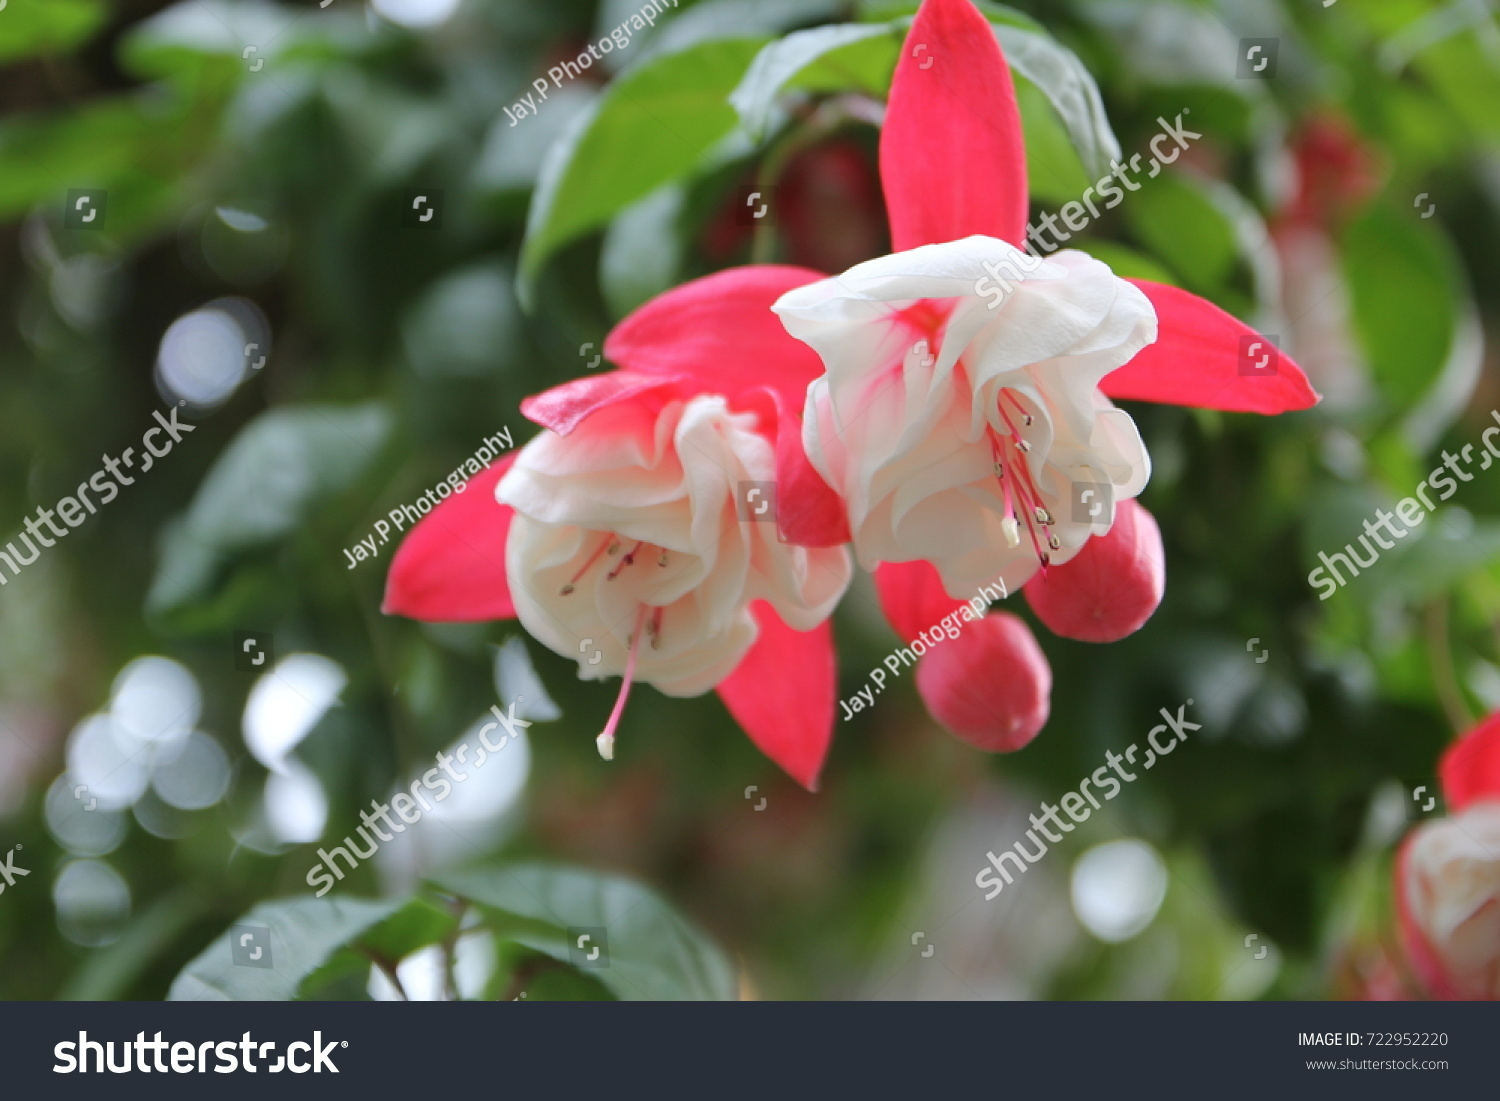 One most beautiful flowers begonia garden stock photo 100 legal one of the most beautiful flowers in begonia garden of nabana no sato flower park in izmirmasajfo